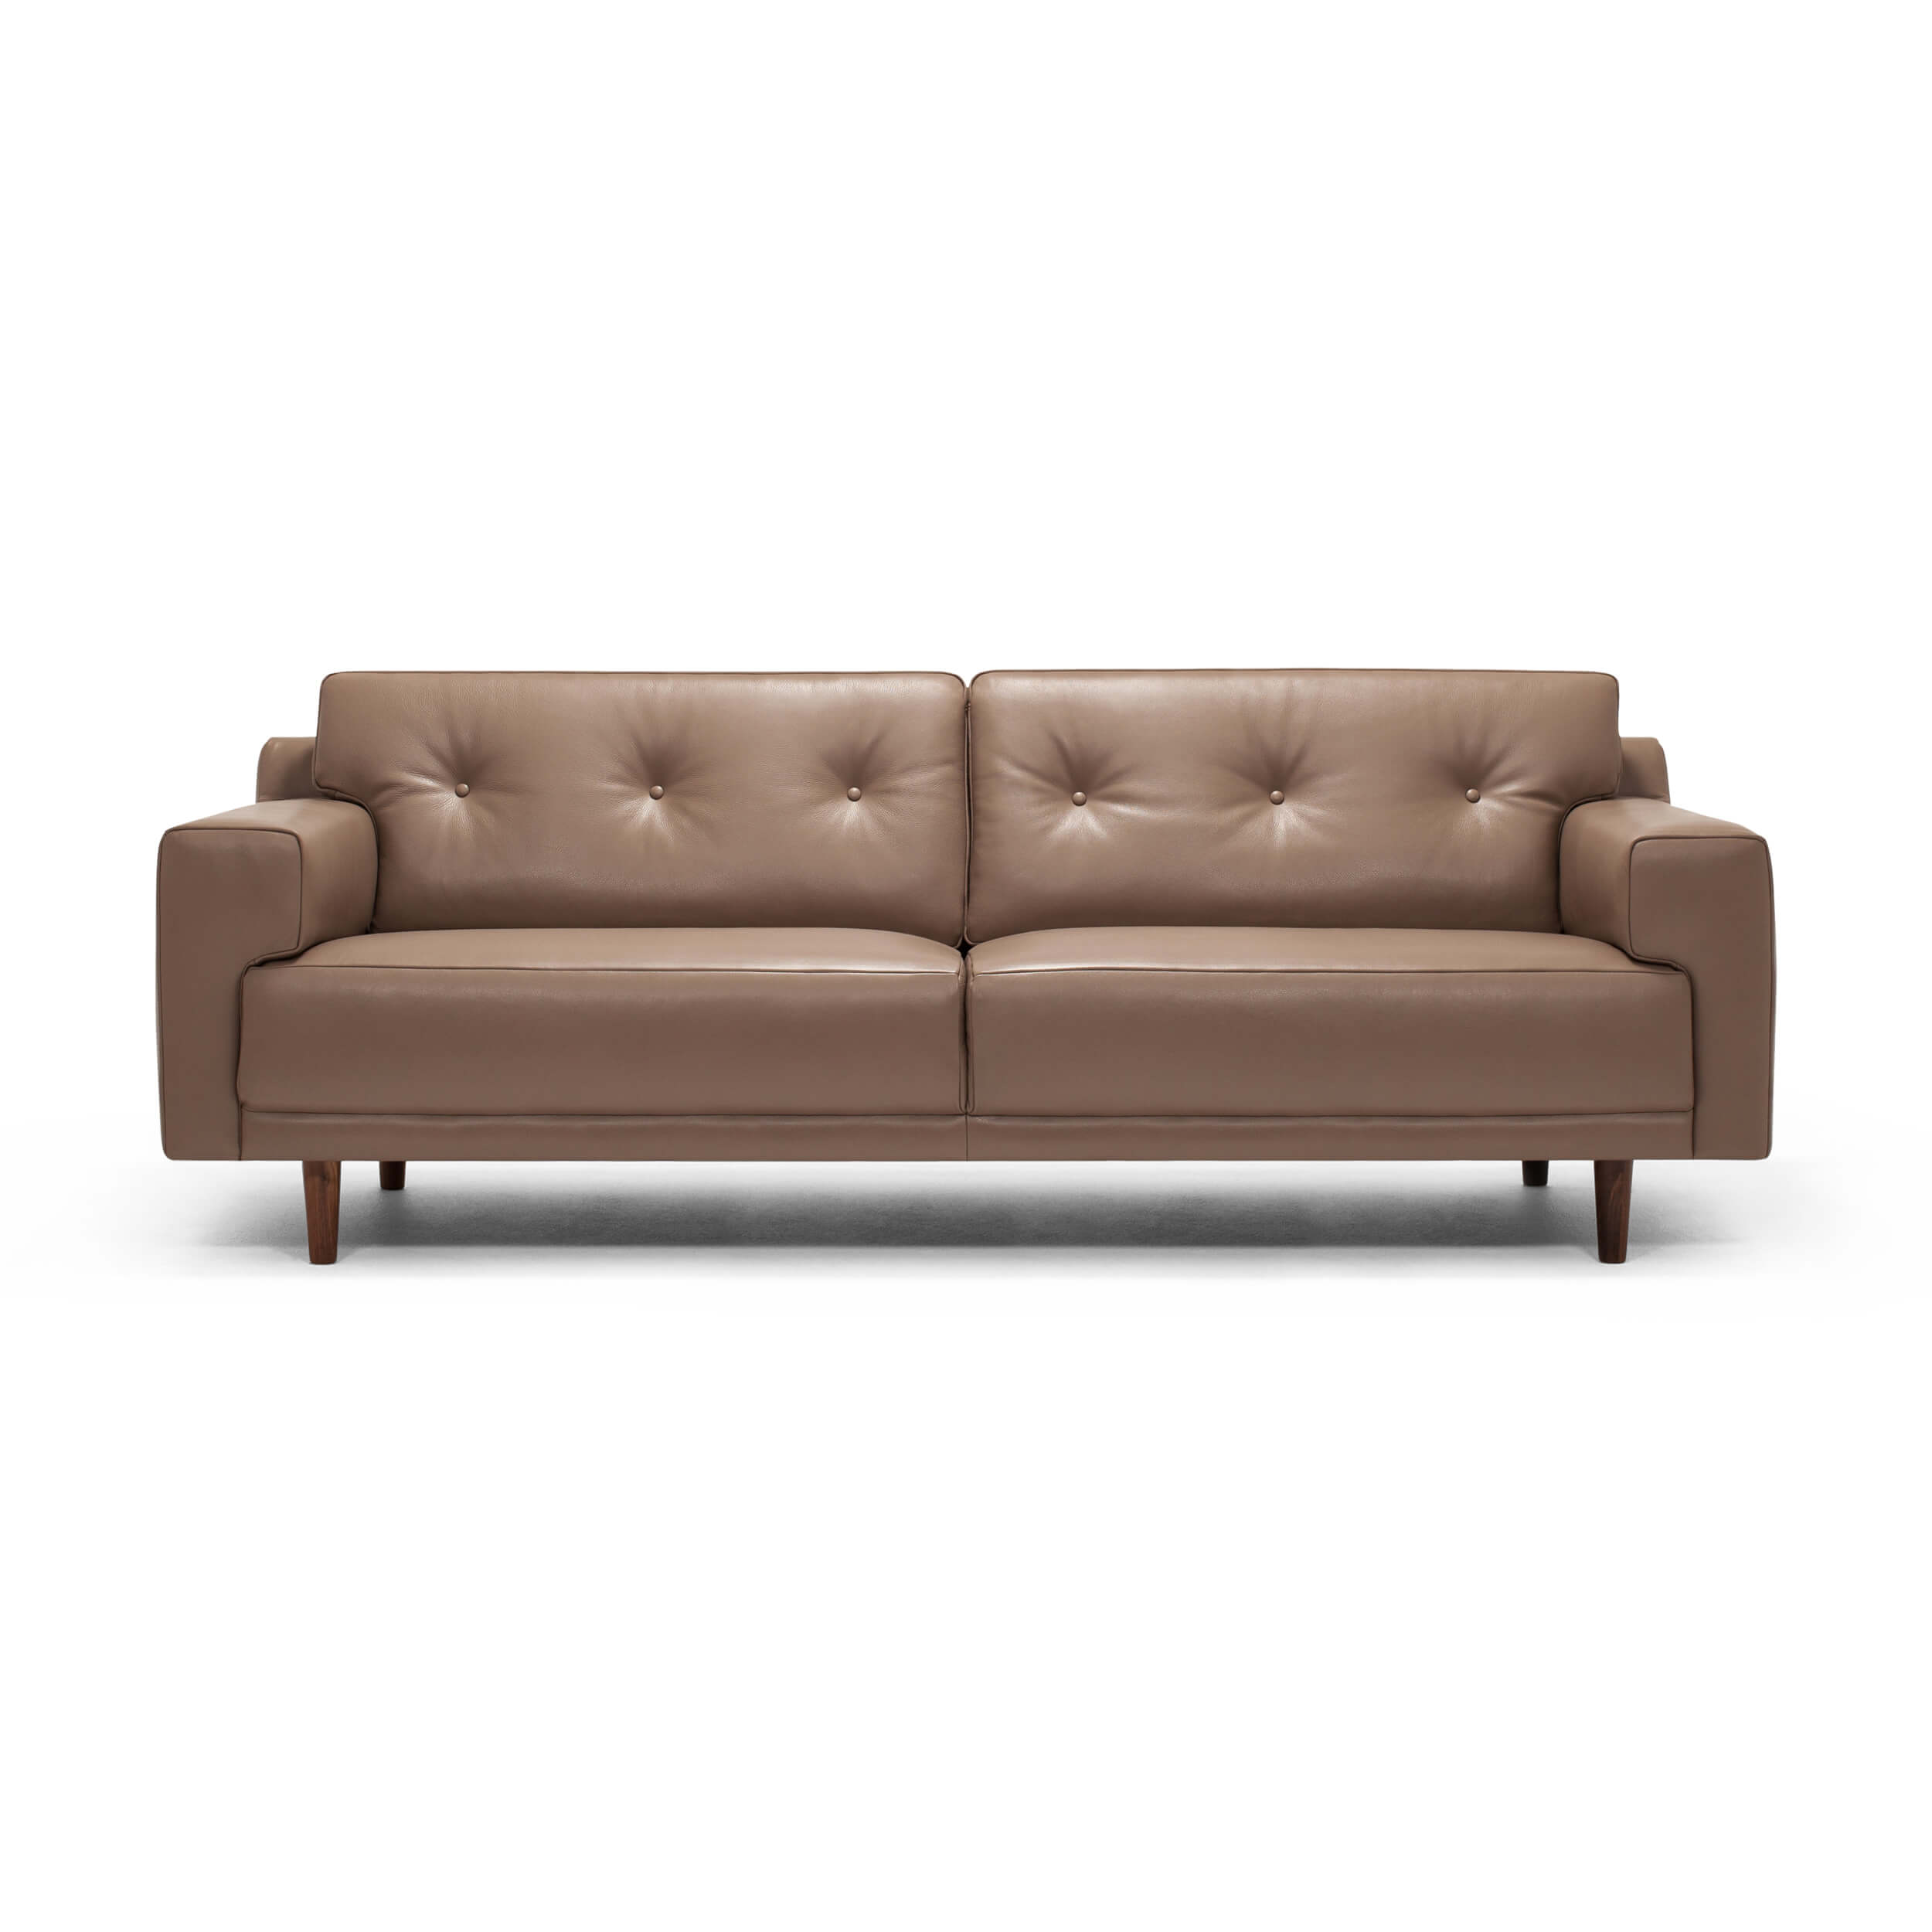 "Remi 87"" Sofa - Leather"